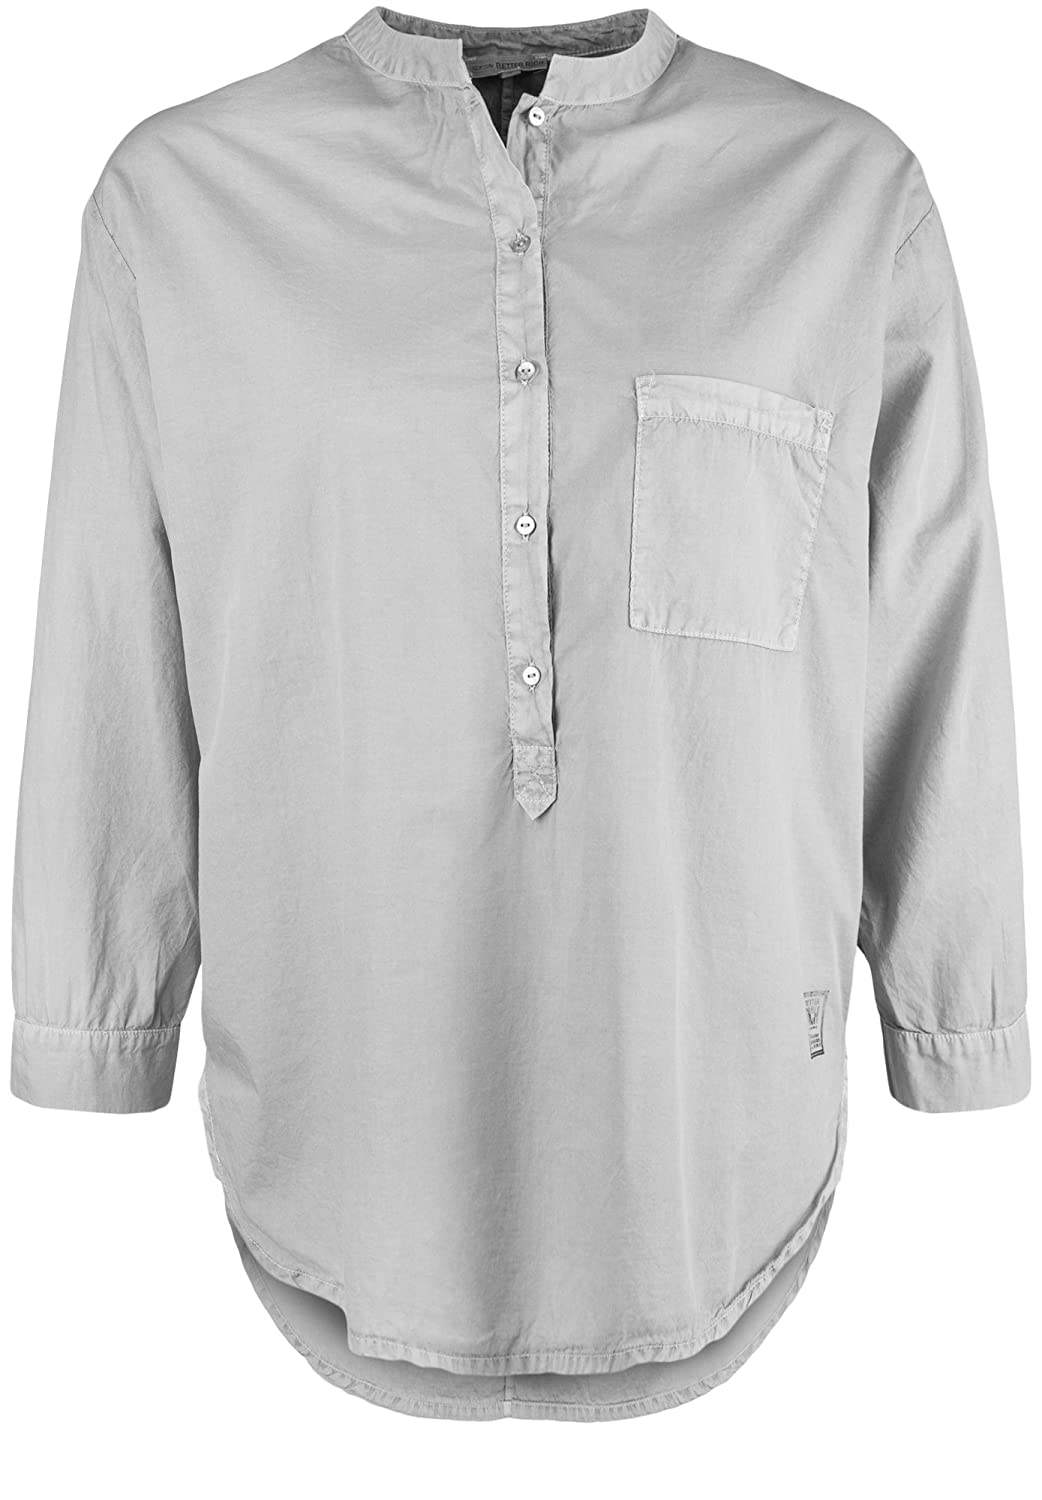 Better Rich Women's Plain Mao 3/4 Sleeve Blouse Small